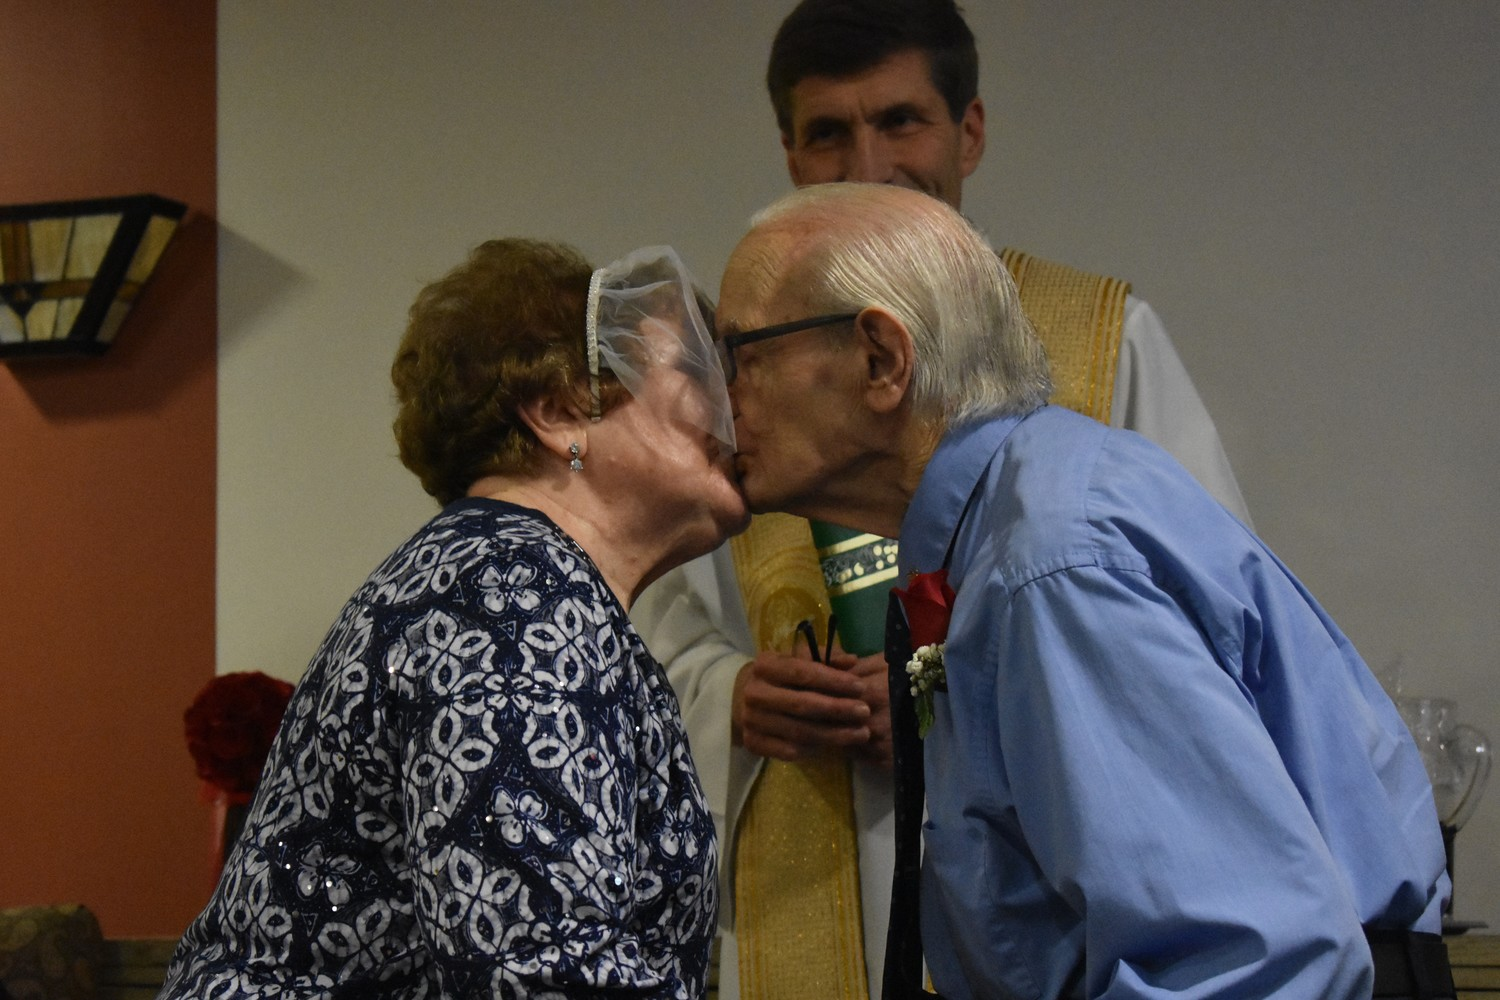 Joe and Florence sealed the ceremony with a kiss.